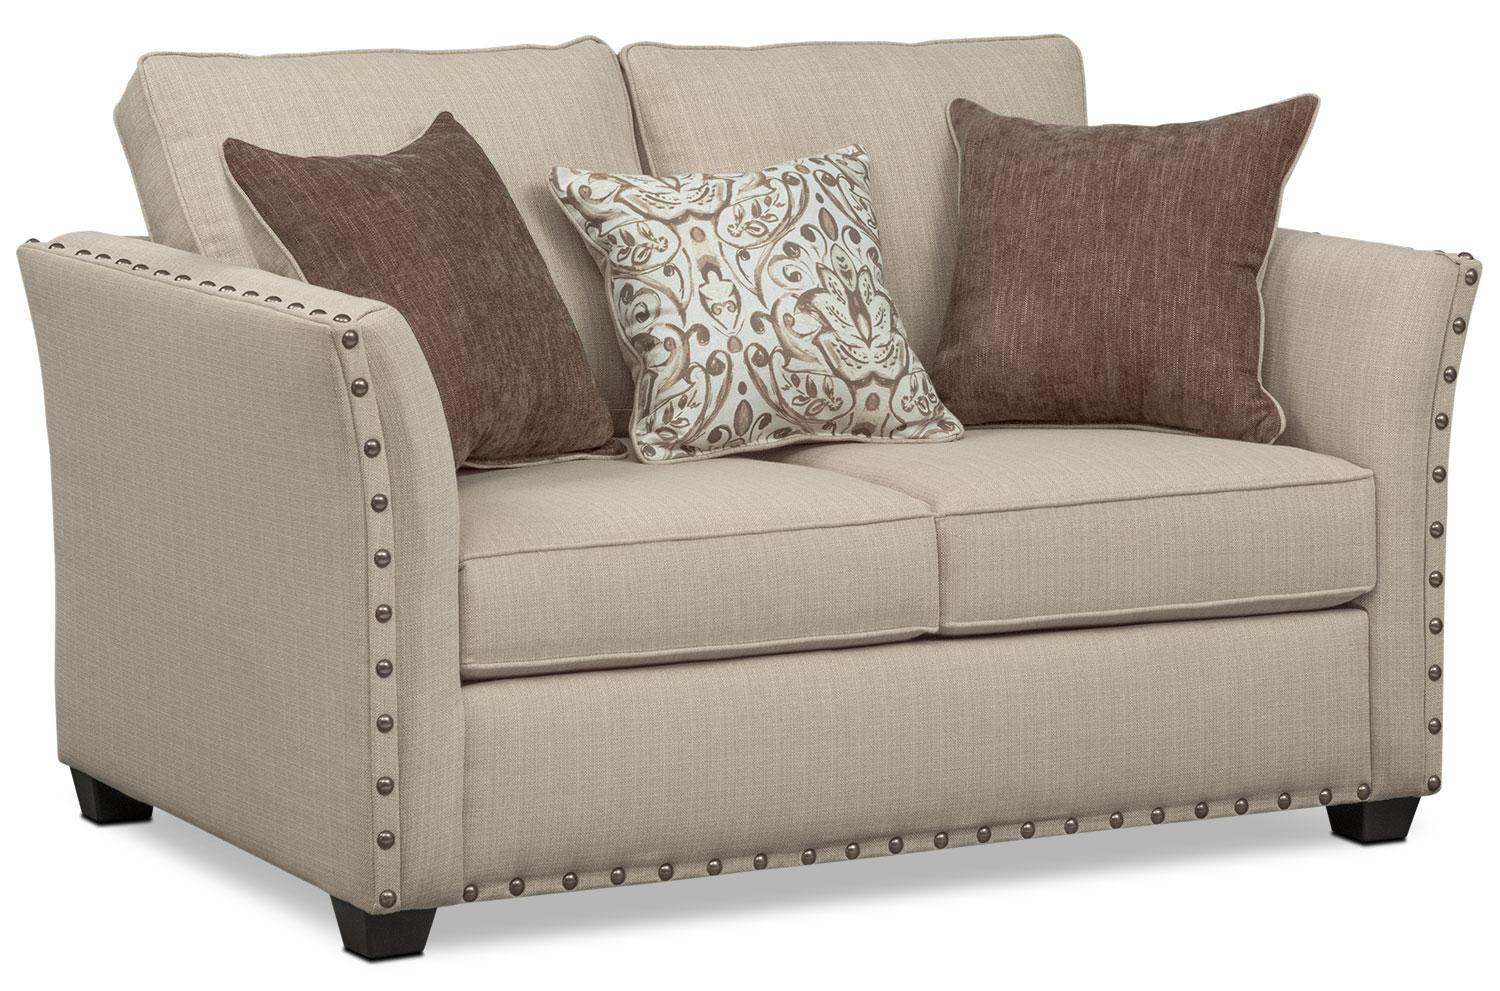 Mckenna Queen Memory Foam Sleeper Sofa, Loveseat, And Chair Set For Sofa Loveseat And Chair Set (Image 12 of 20)